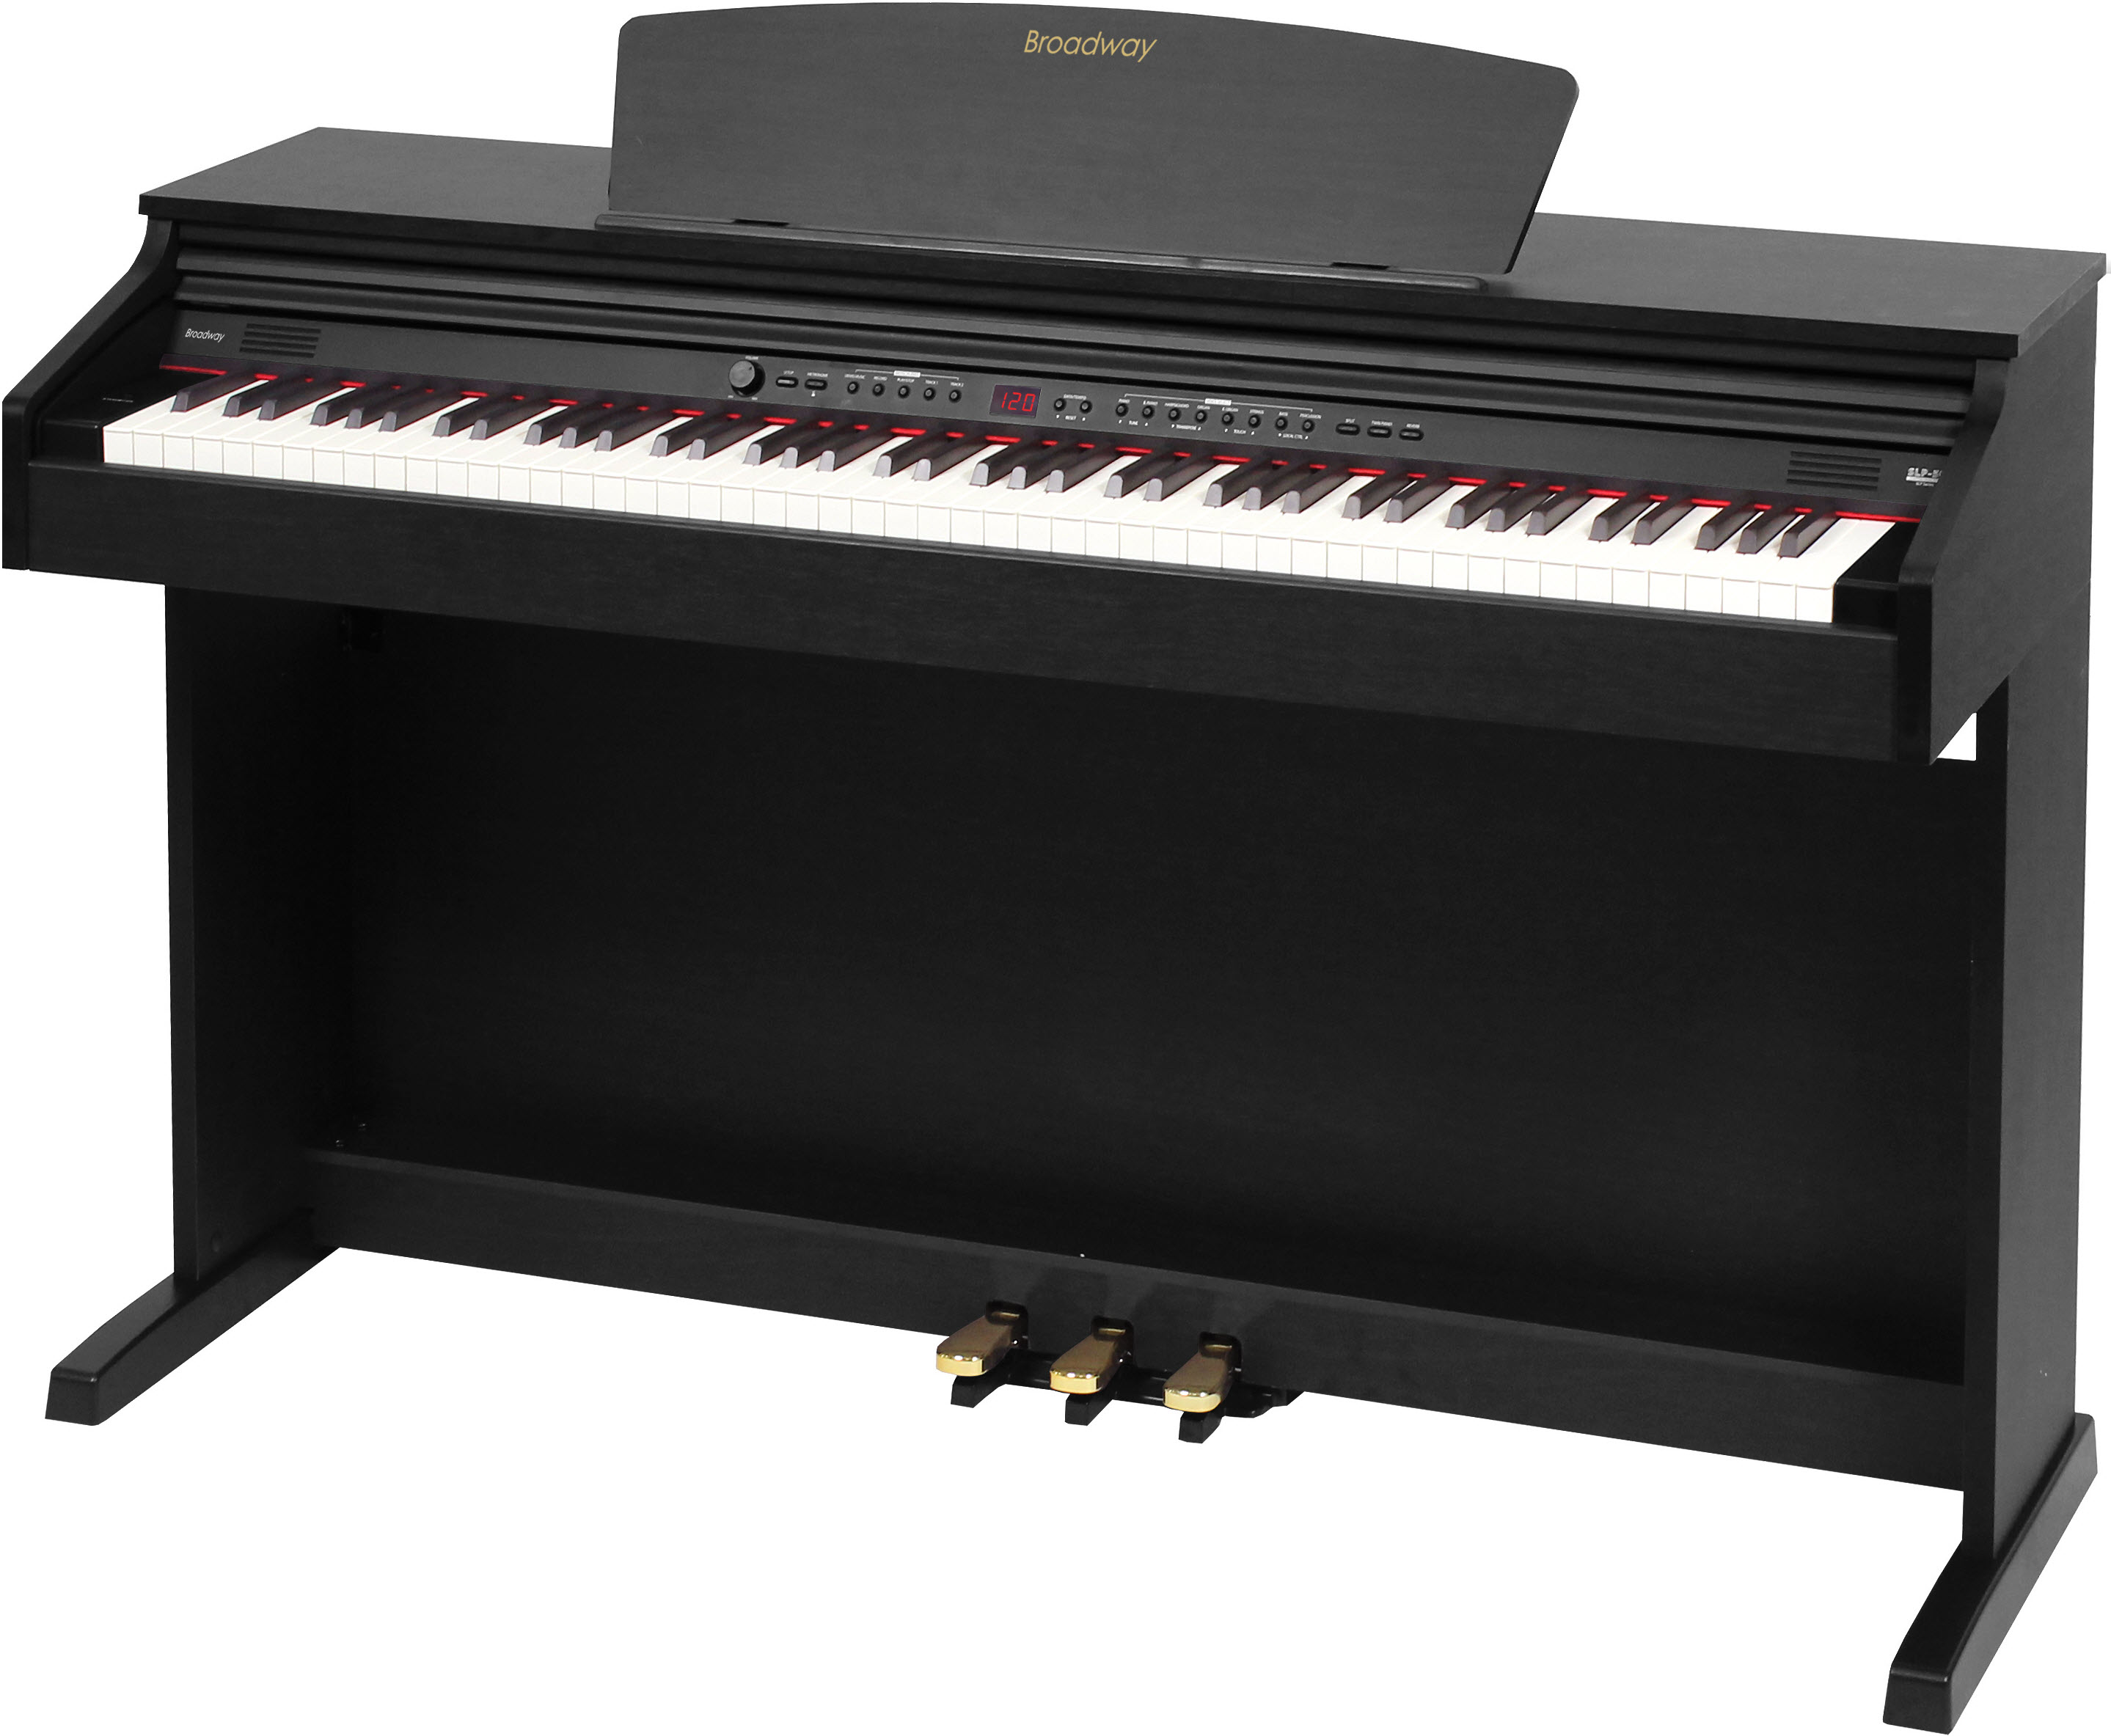 Broadway EZ-102 Black Satin